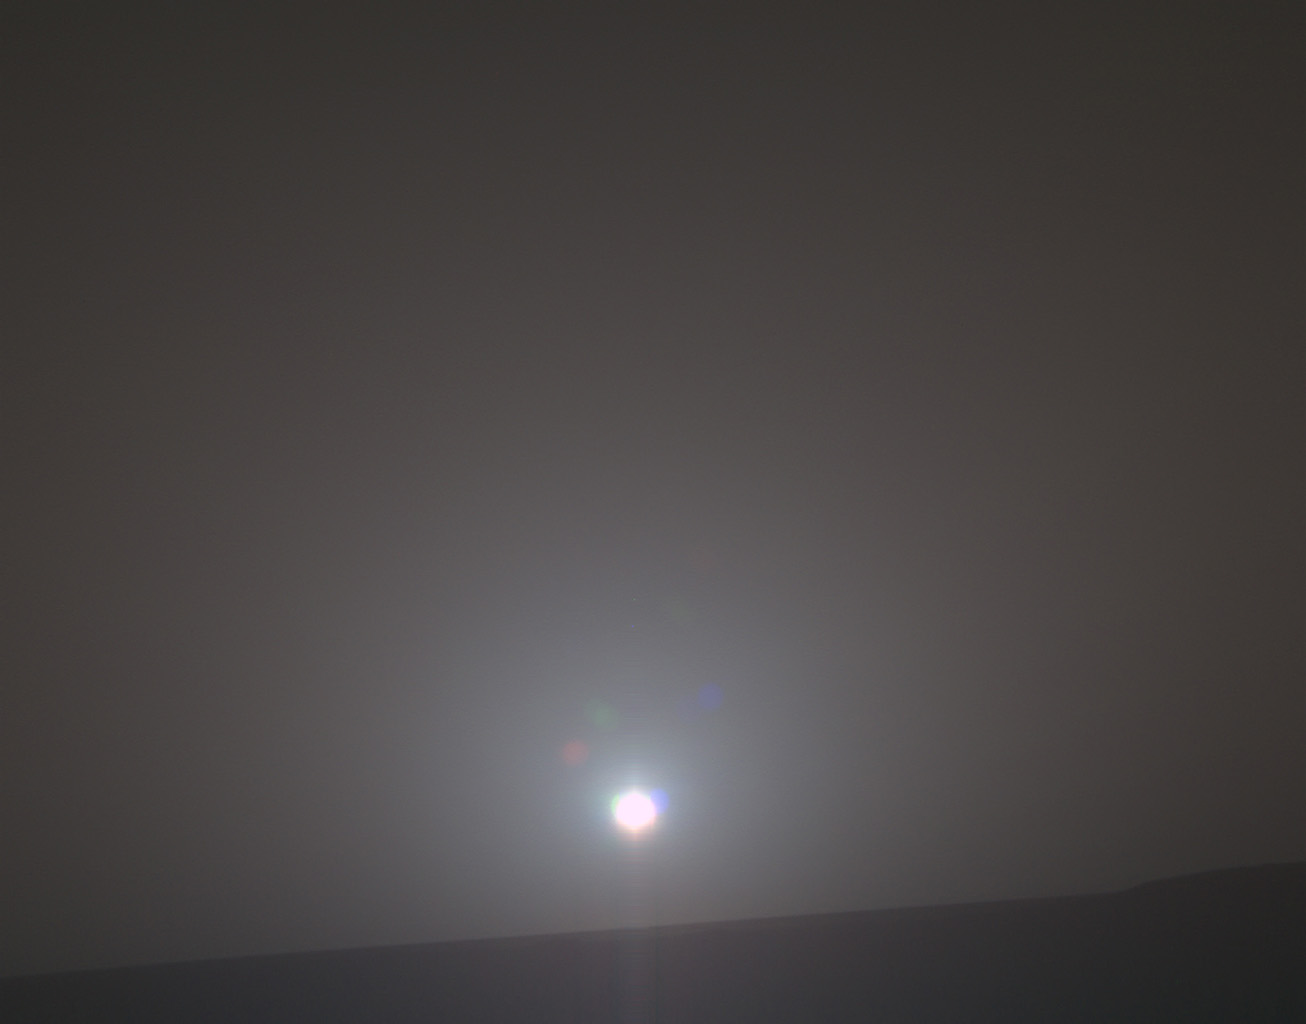 Sunrise on Mars, February 16, 2018